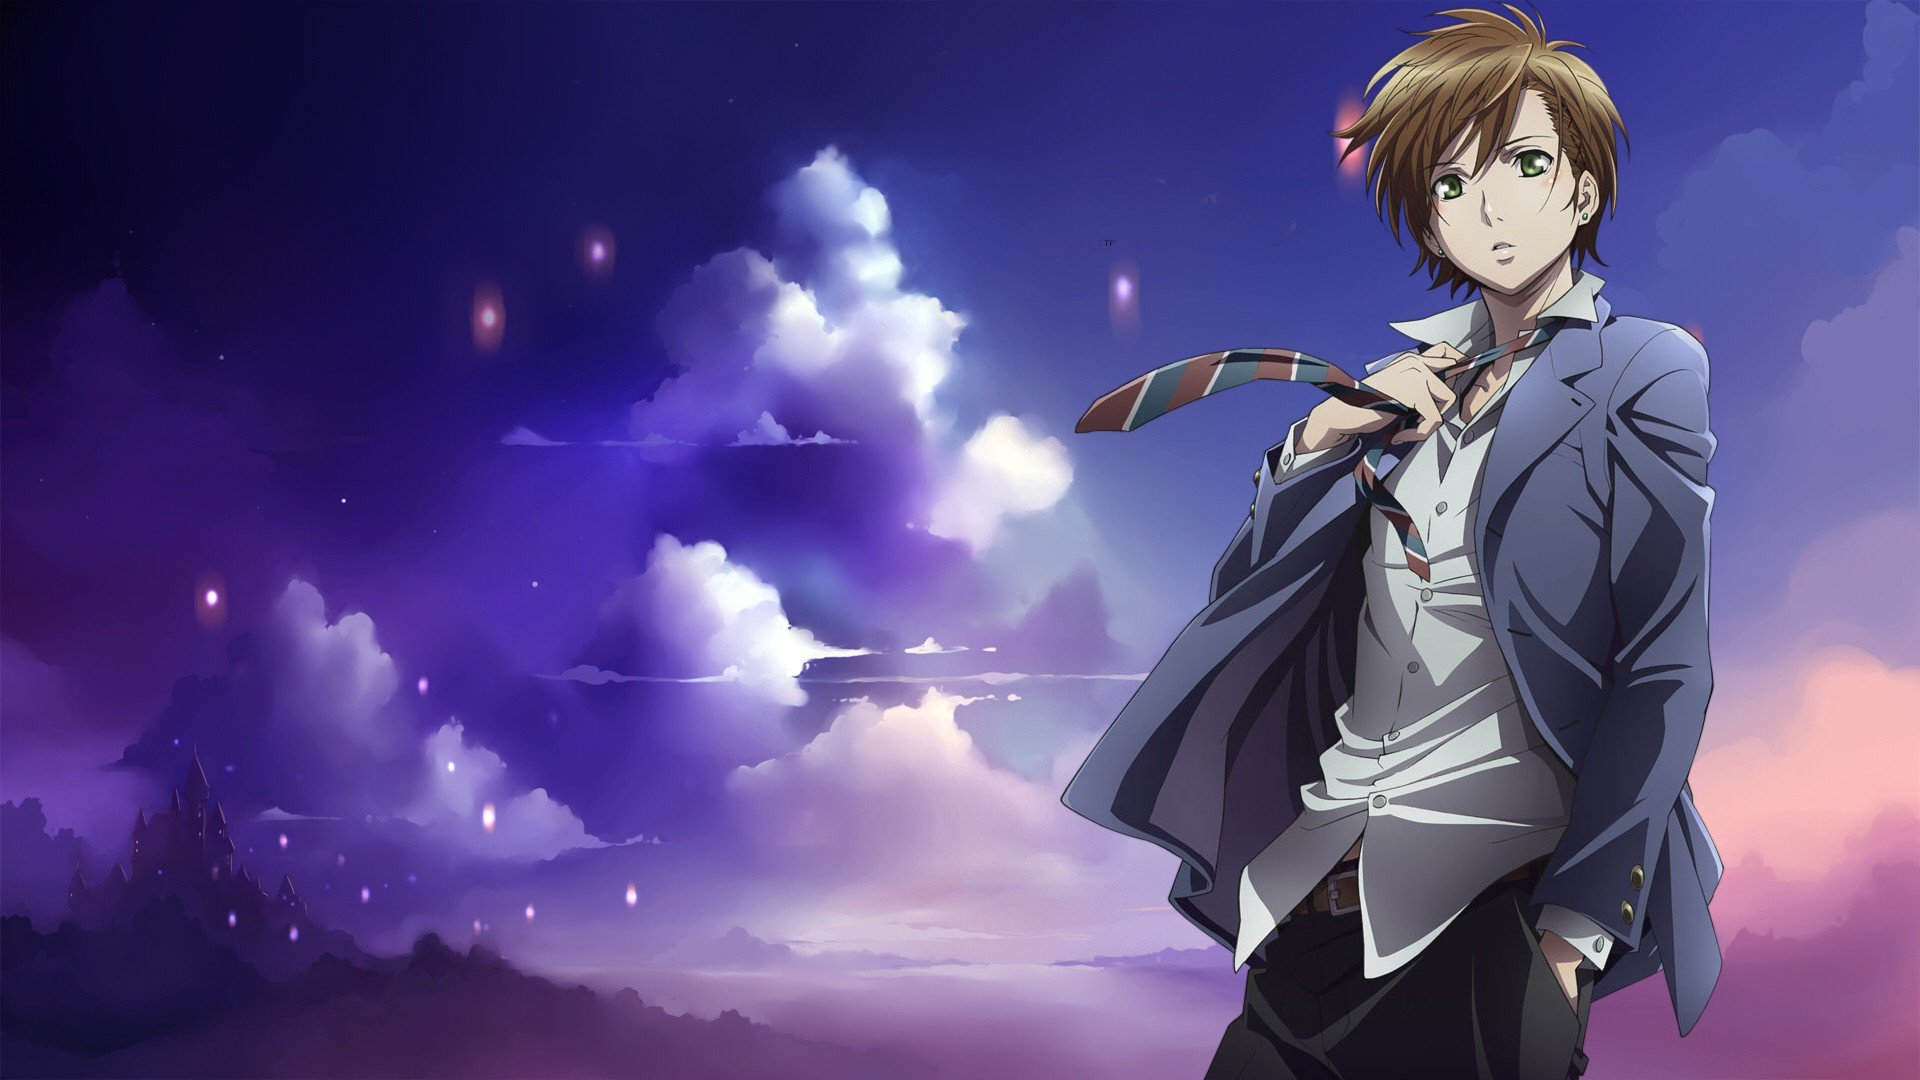 anime_wallpaper_Blast_of_Tempest_177839292.jpg